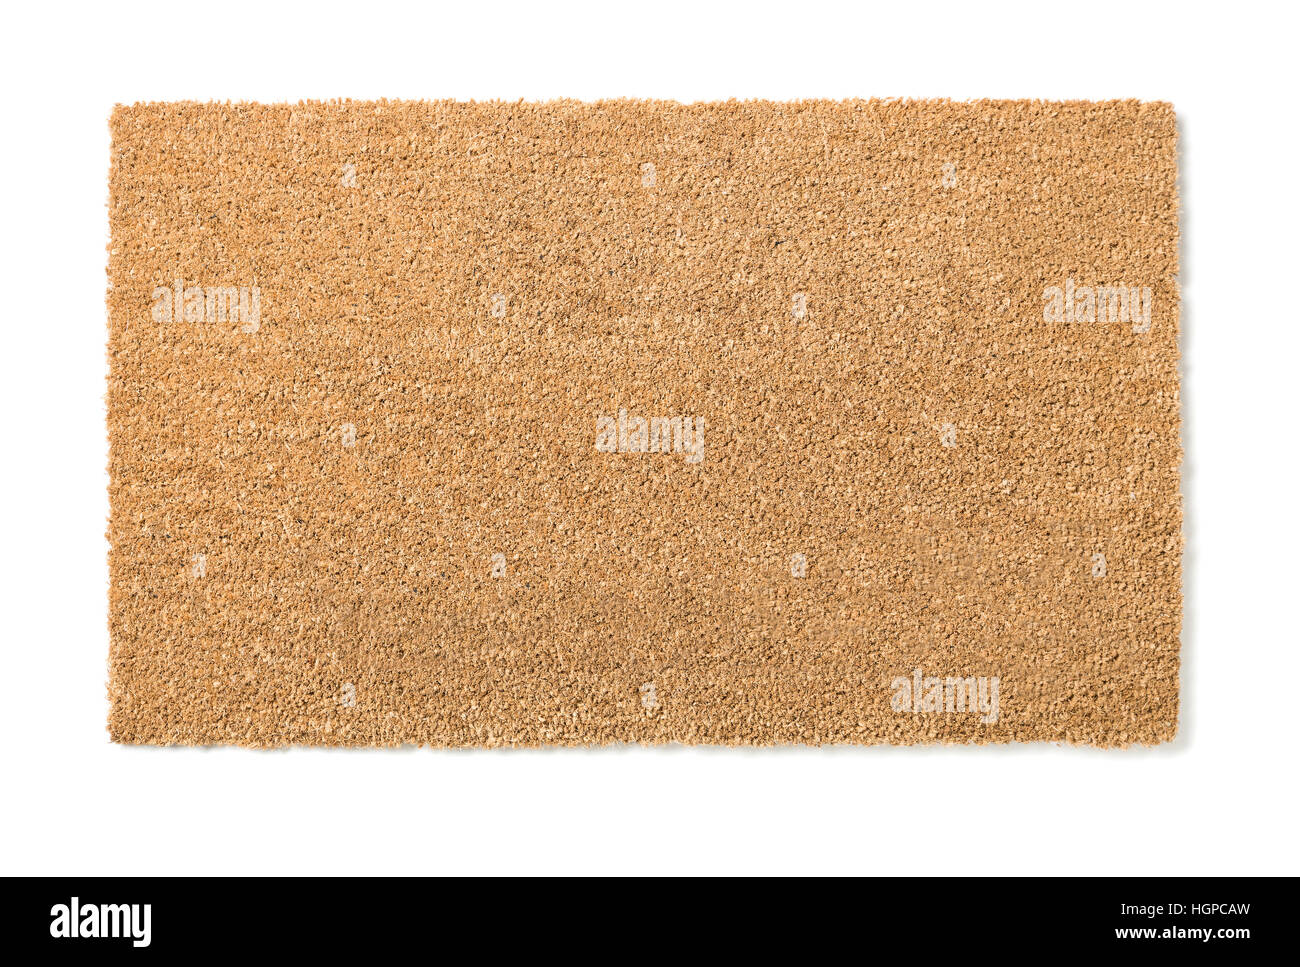 Blank Home Sweet Home Welcome Mat Isolated on a White Background Ready For Your Own Text. - Stock Image